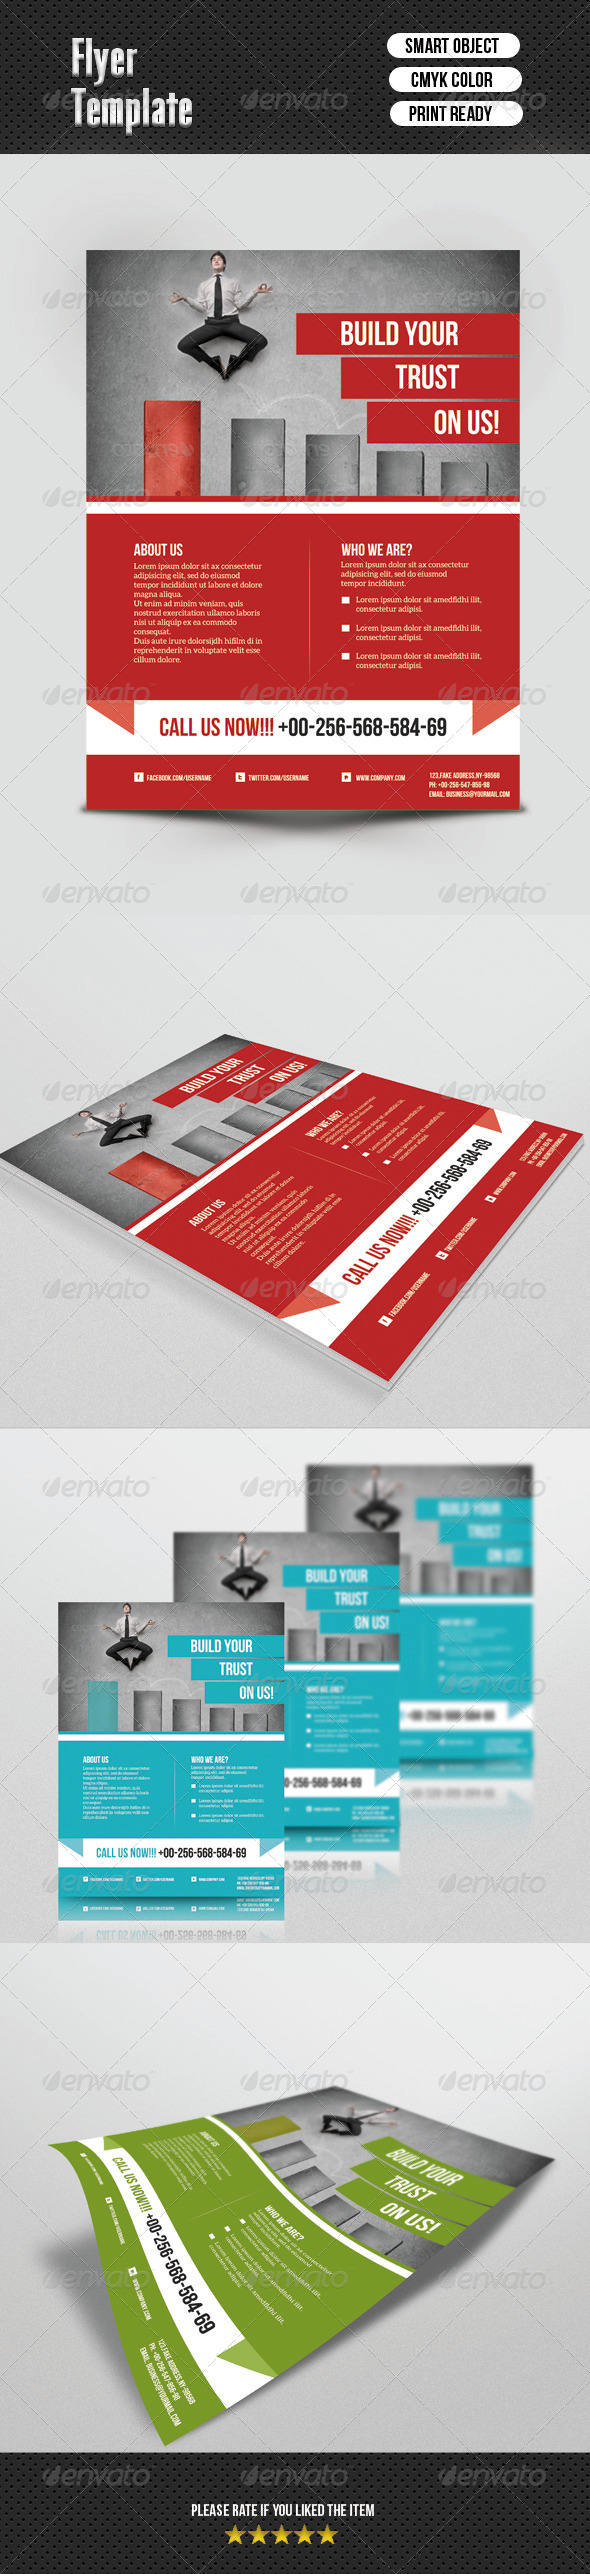 GraphicRiver Corporate Flyer Template 6742270